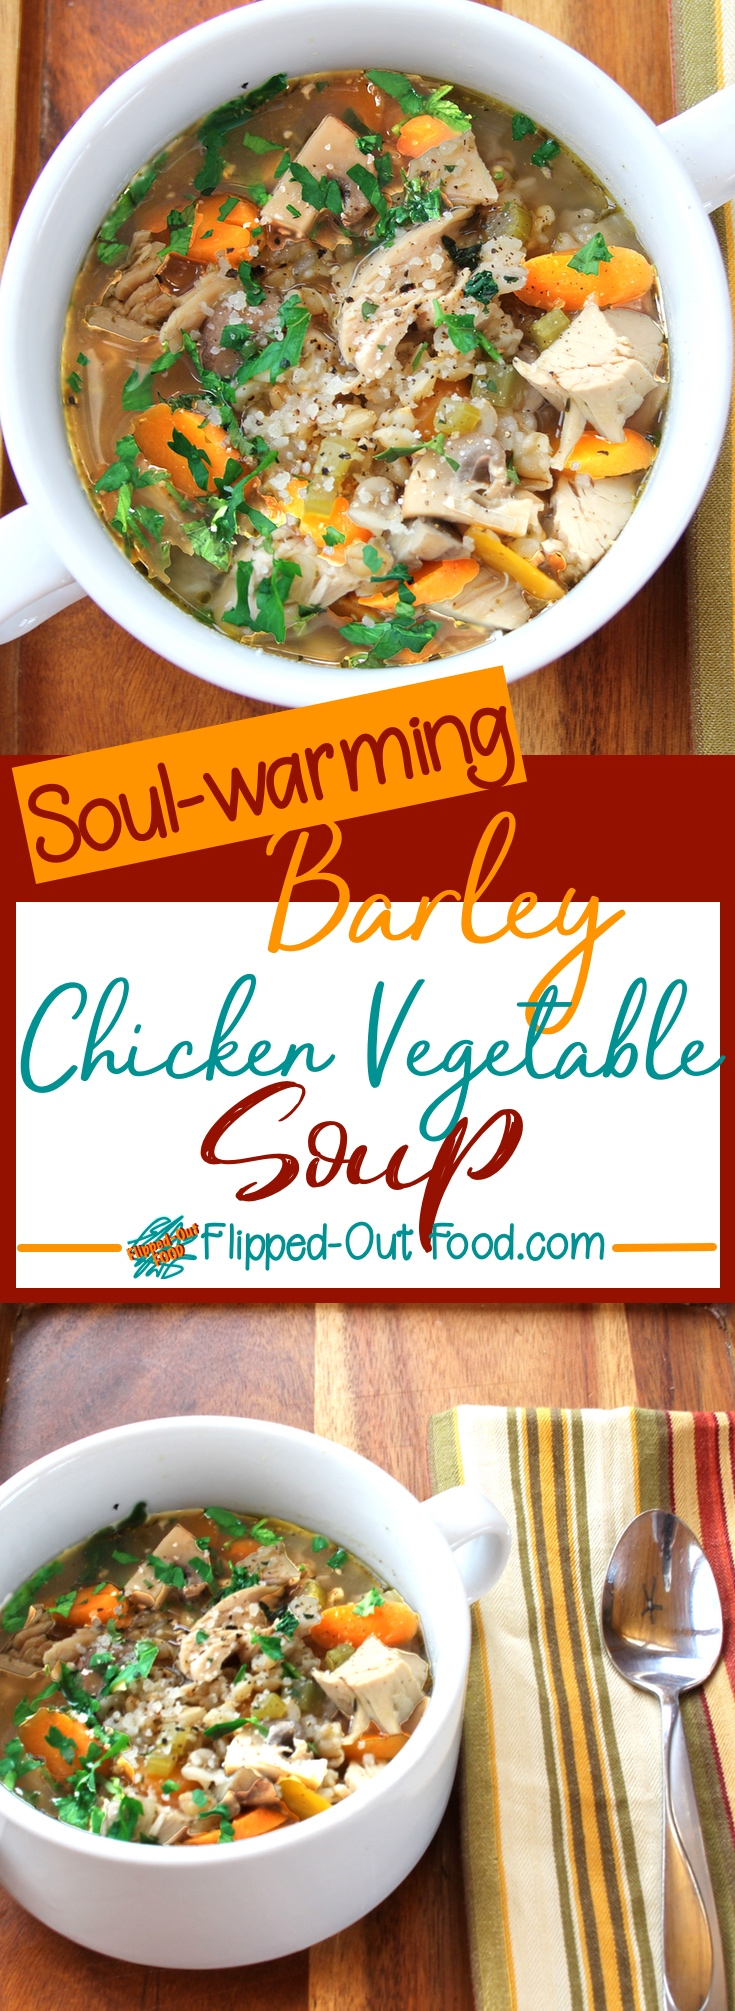 Barley Chicken & Vegetable Soup is just what the doctor ordered for a warm-up on cold days. Since the soup starts with cooked chicken, it can be done in just about an hour—just be sure to soak the barley overnight. OR, use my suggested modifications to make the soup in your slow-cooker. #comfortfood #cleaneating #healthyeating #barleysoup #chickensoup #crockpot #slowcooker